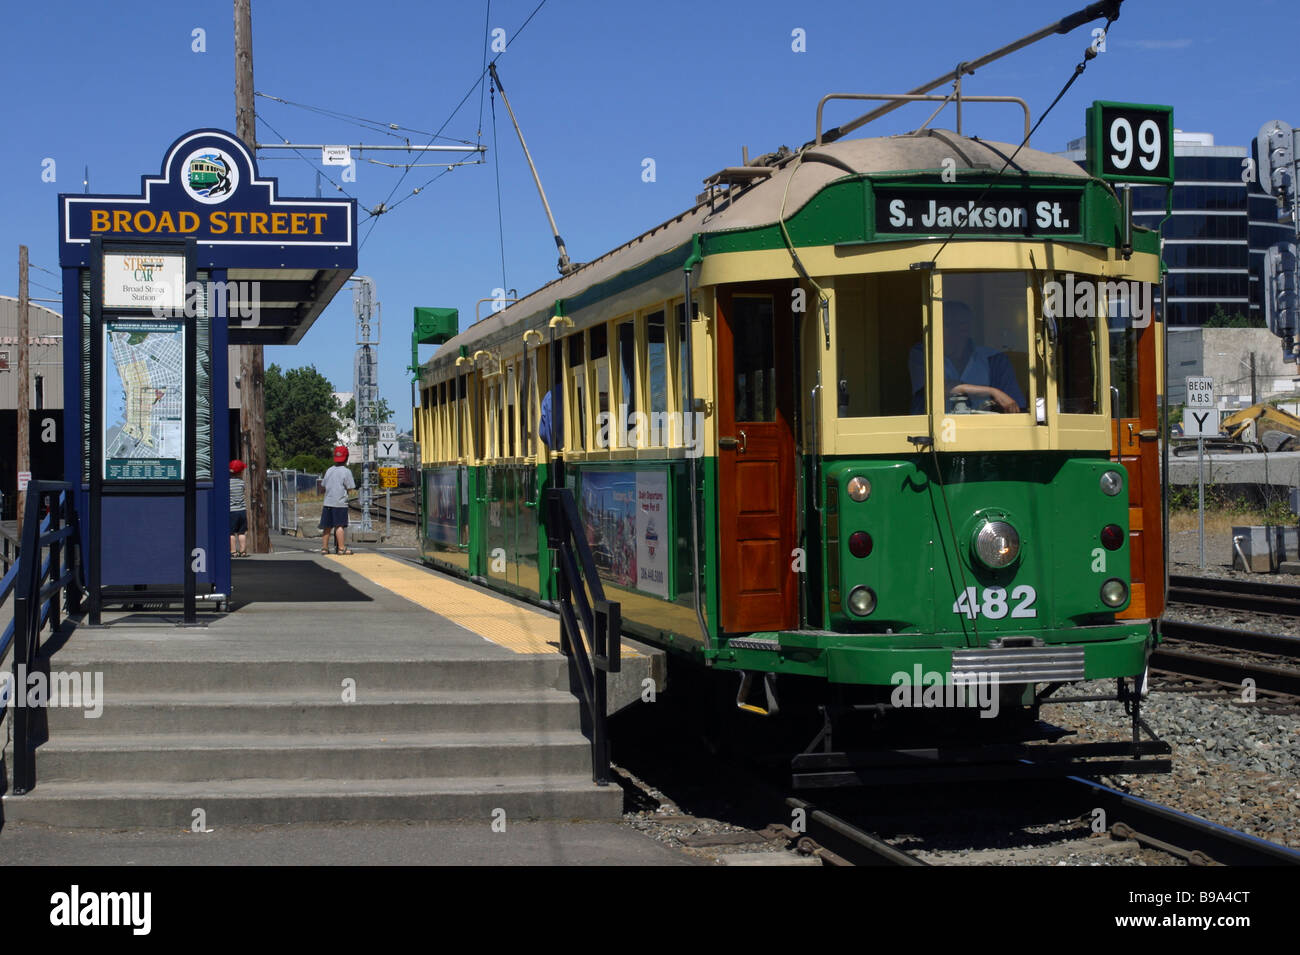 City Transport Tram Trolley Yellow Green Paint Route 99 Broad Street Platform Stop SEATTLE WASHINGTON STATE USA